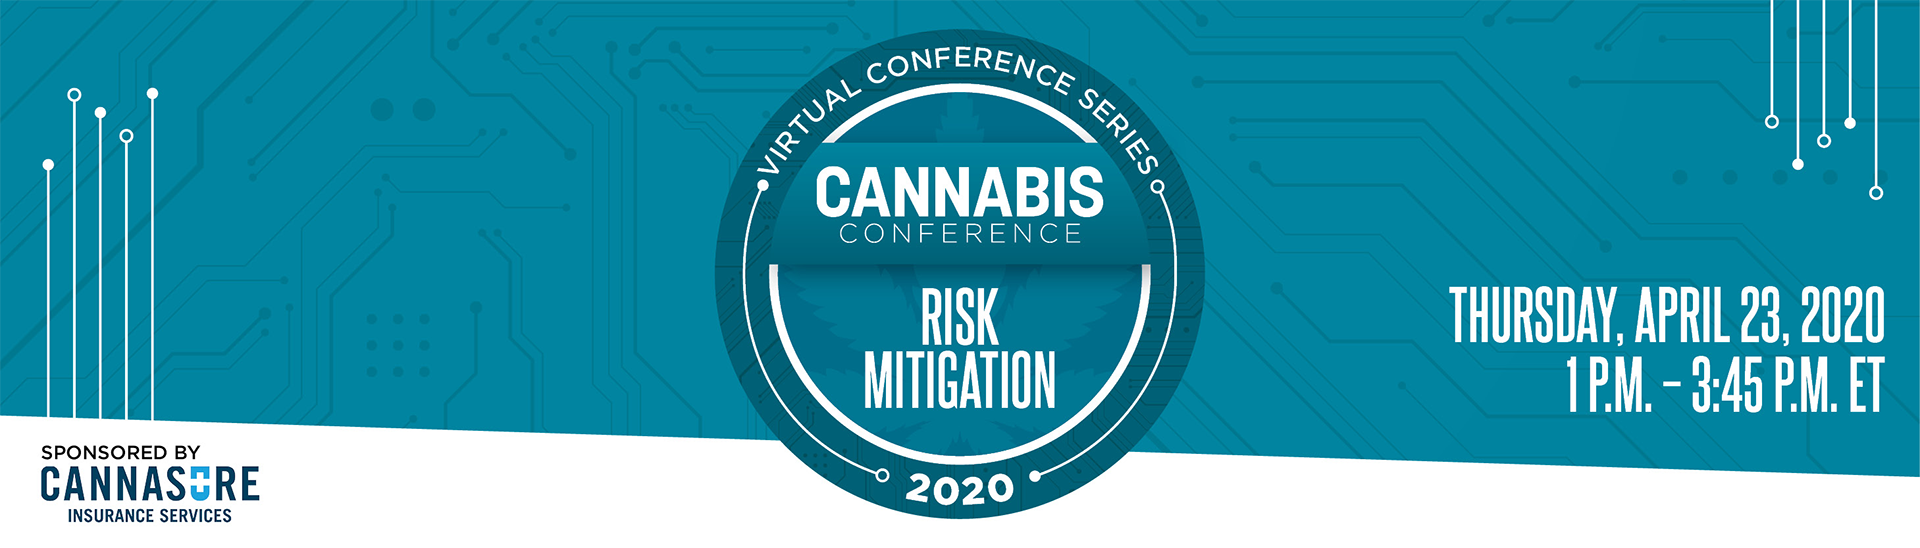 Cannabis Conference Risk Mitigation